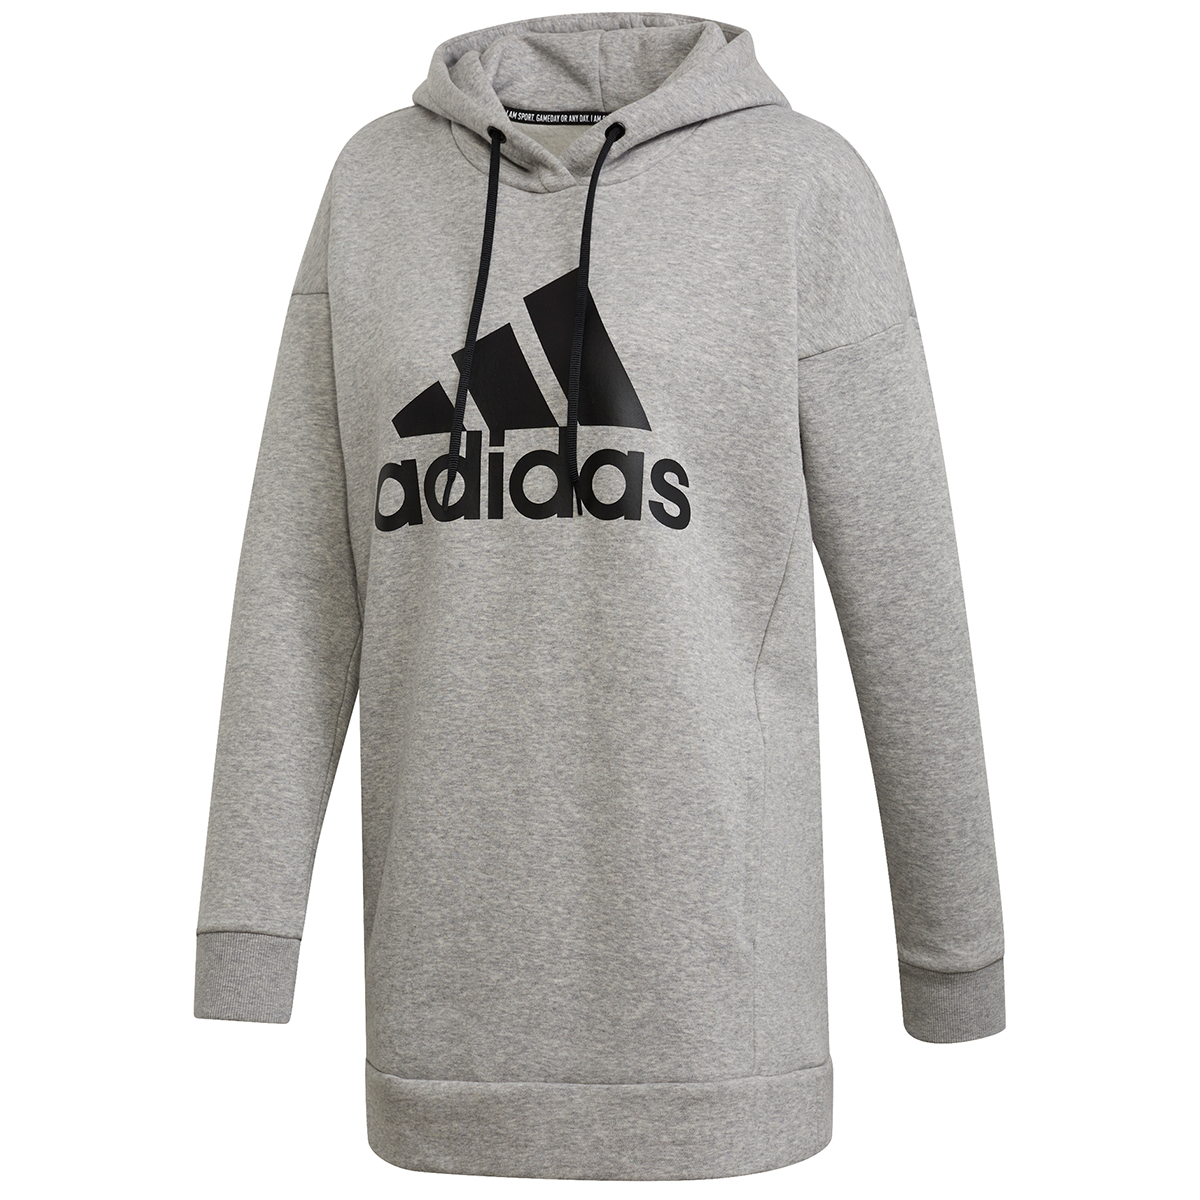 Adidas Women's Must Have Badge Of Sport Pullover Hoodie - Black, M